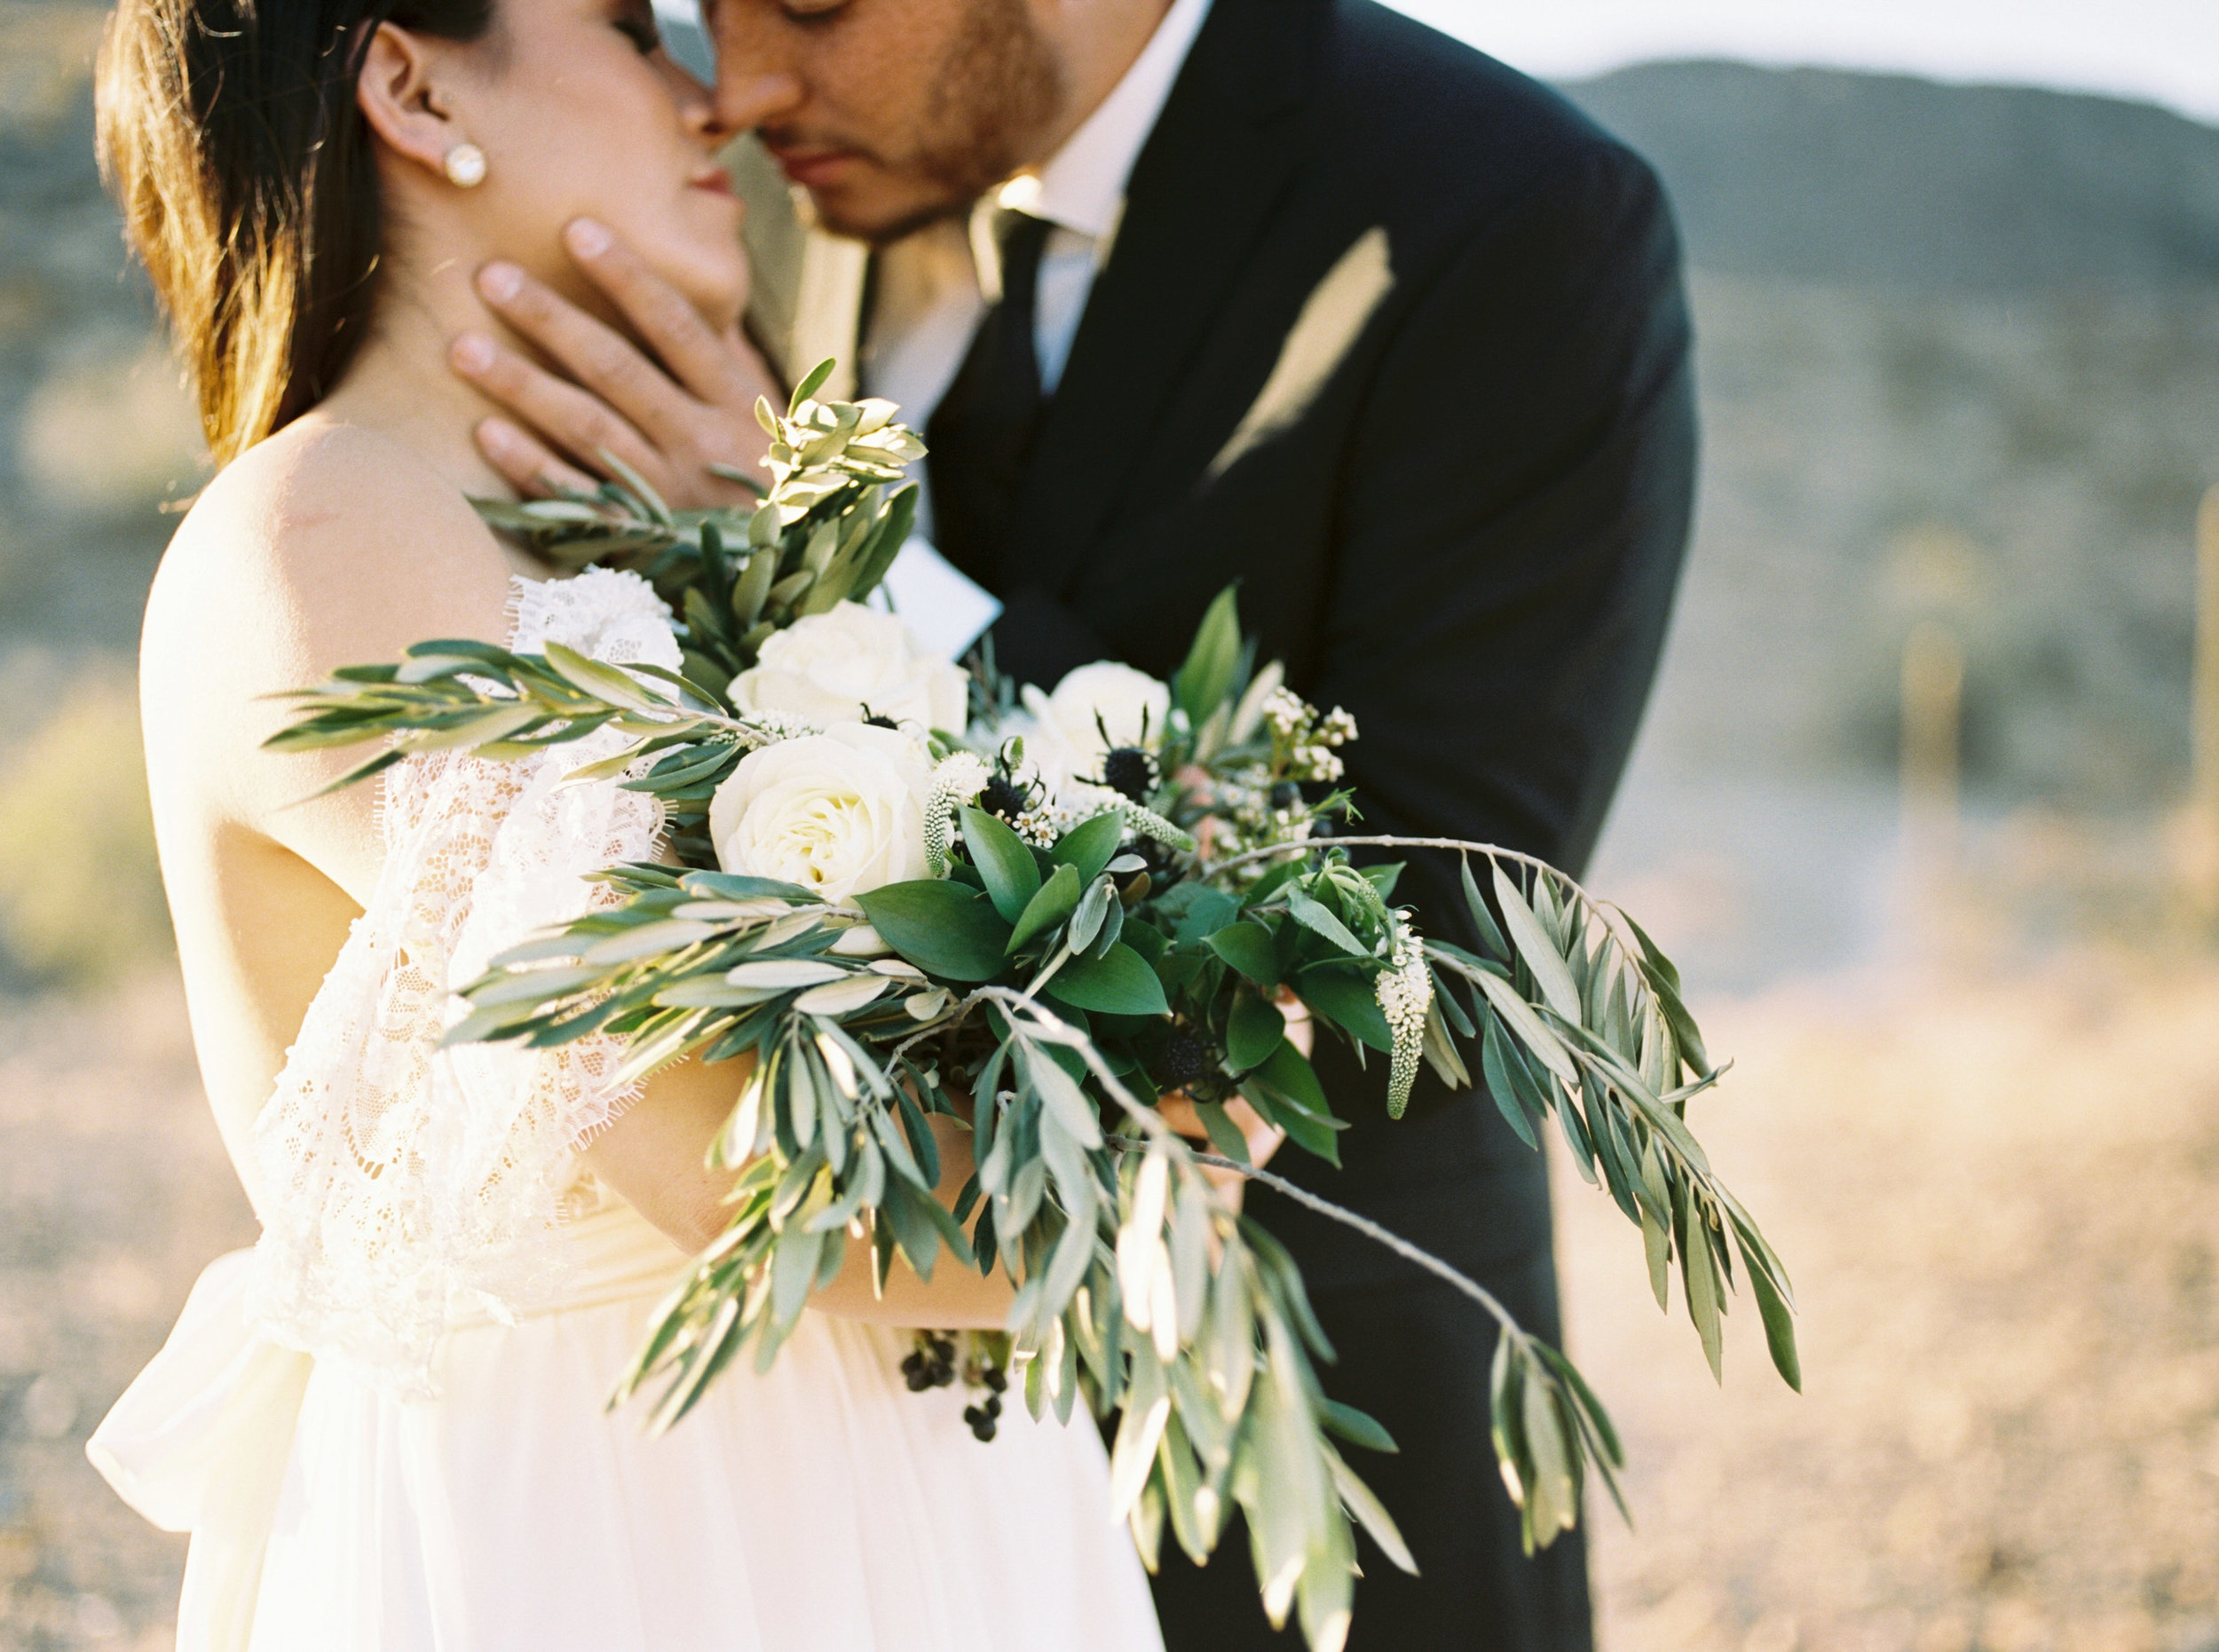 Fine Art Desert Elopement - Olive bouquet with white and black blooms